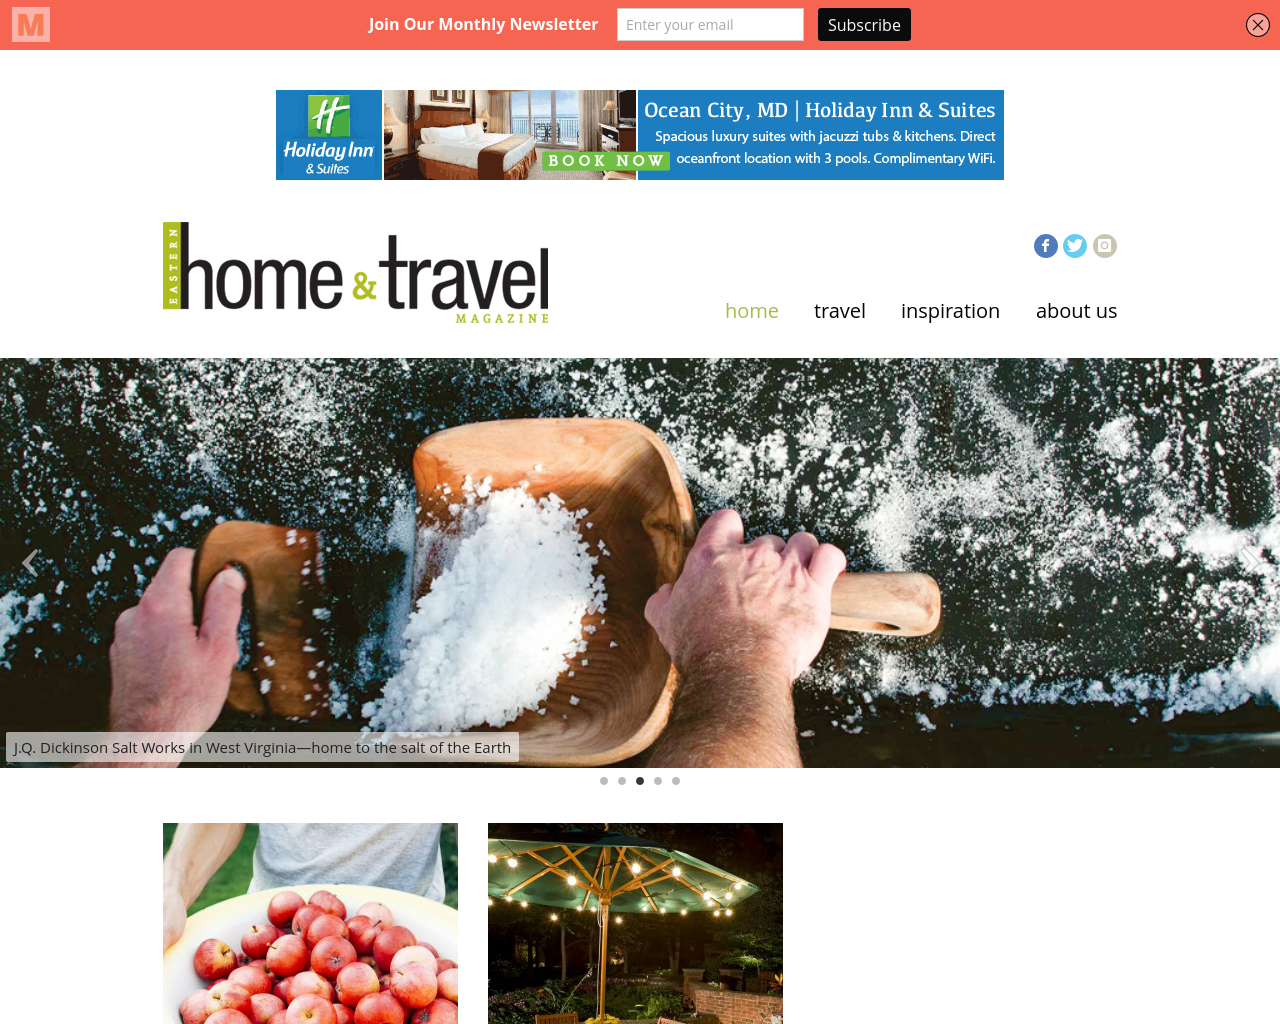 Eastern-Home-&-Travel-Magazine-Advertising-Reviews-Pricing